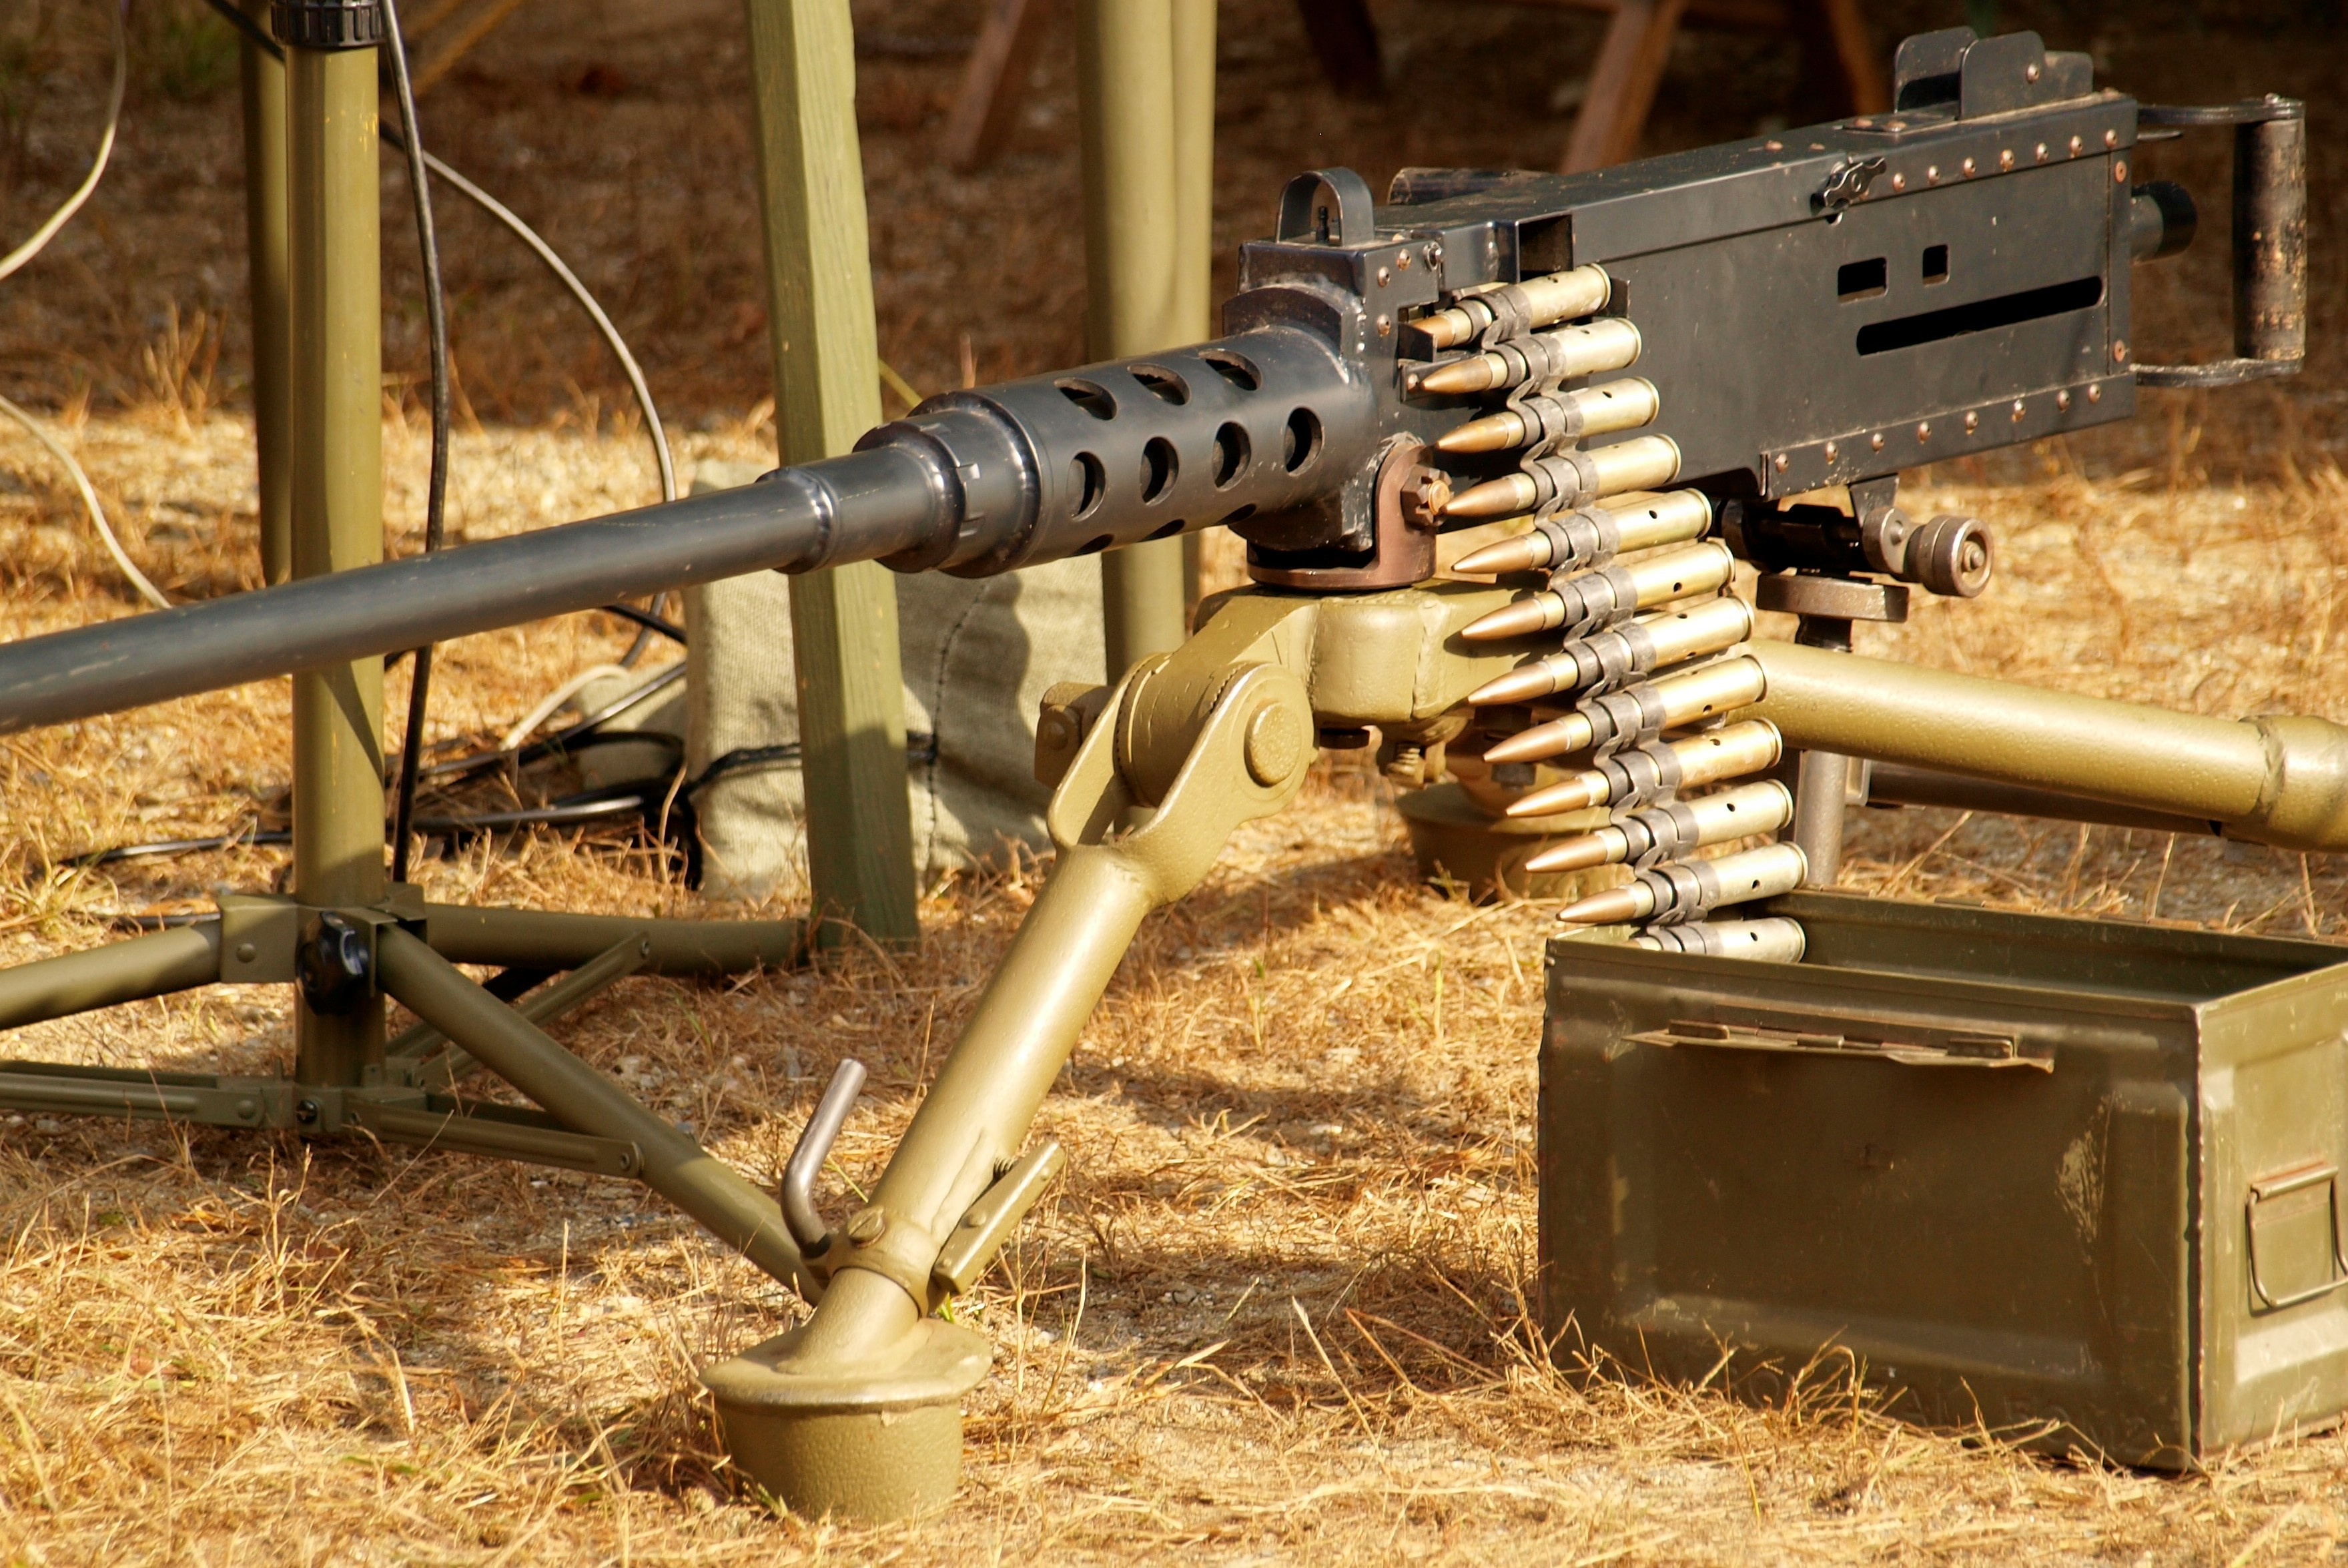 3 M2 Browning HD Wallpapers